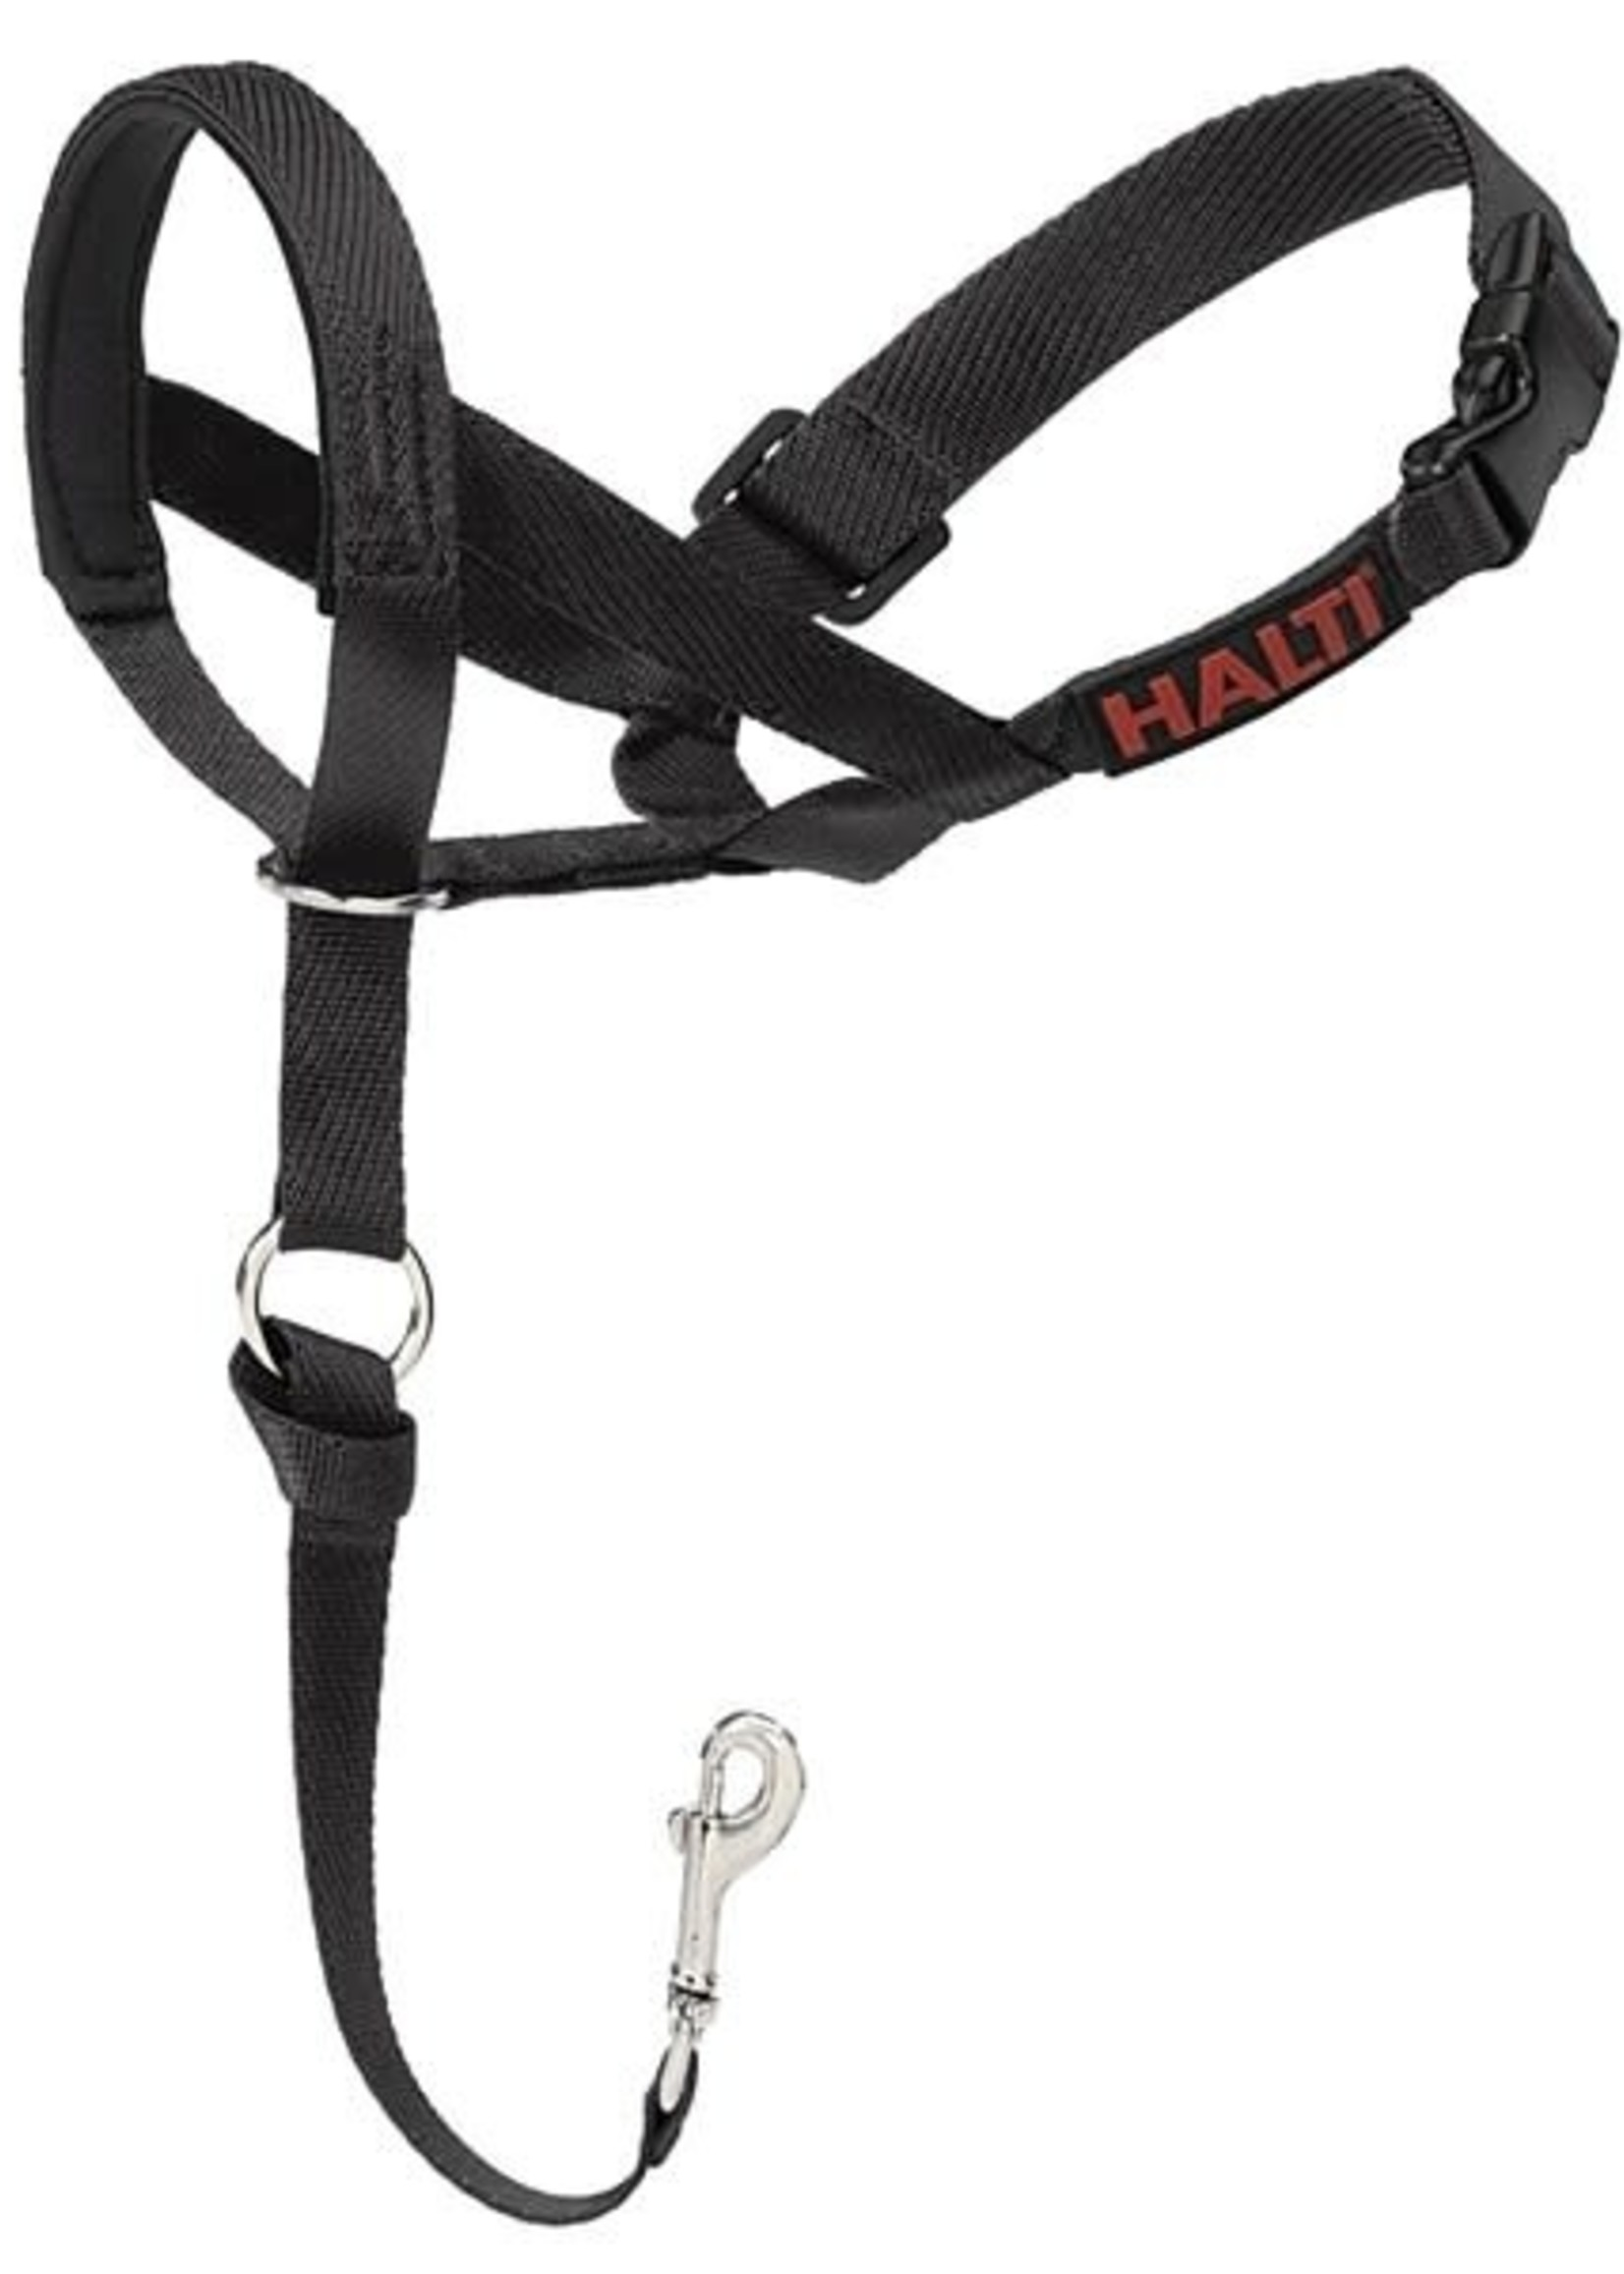 The Company of Animals Halti Headcollar Size - 5